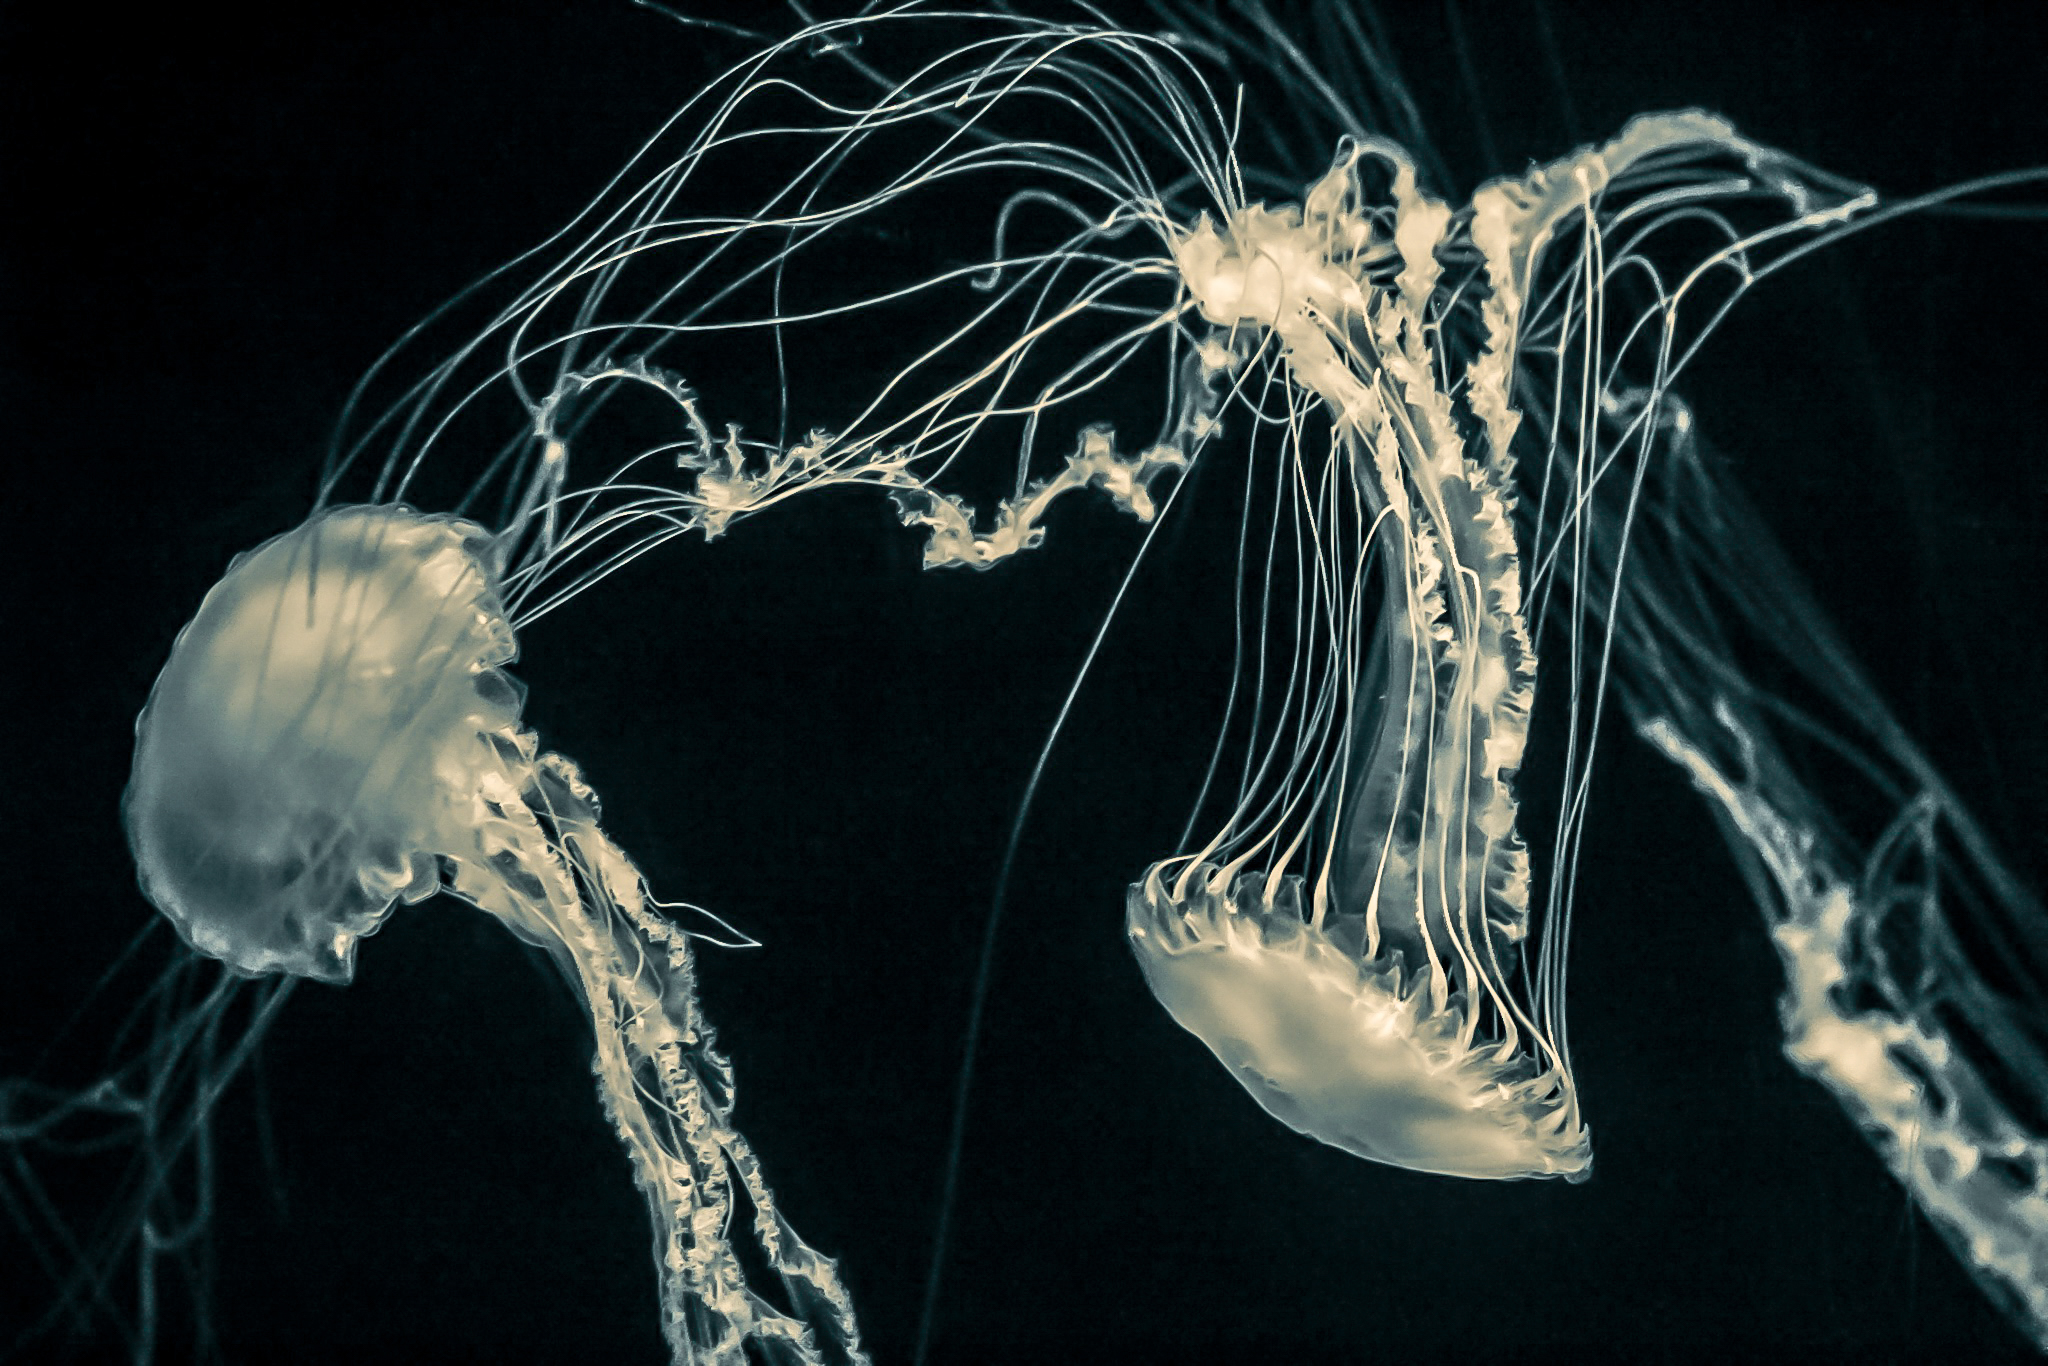 Jellies, one of my photographic obsessions